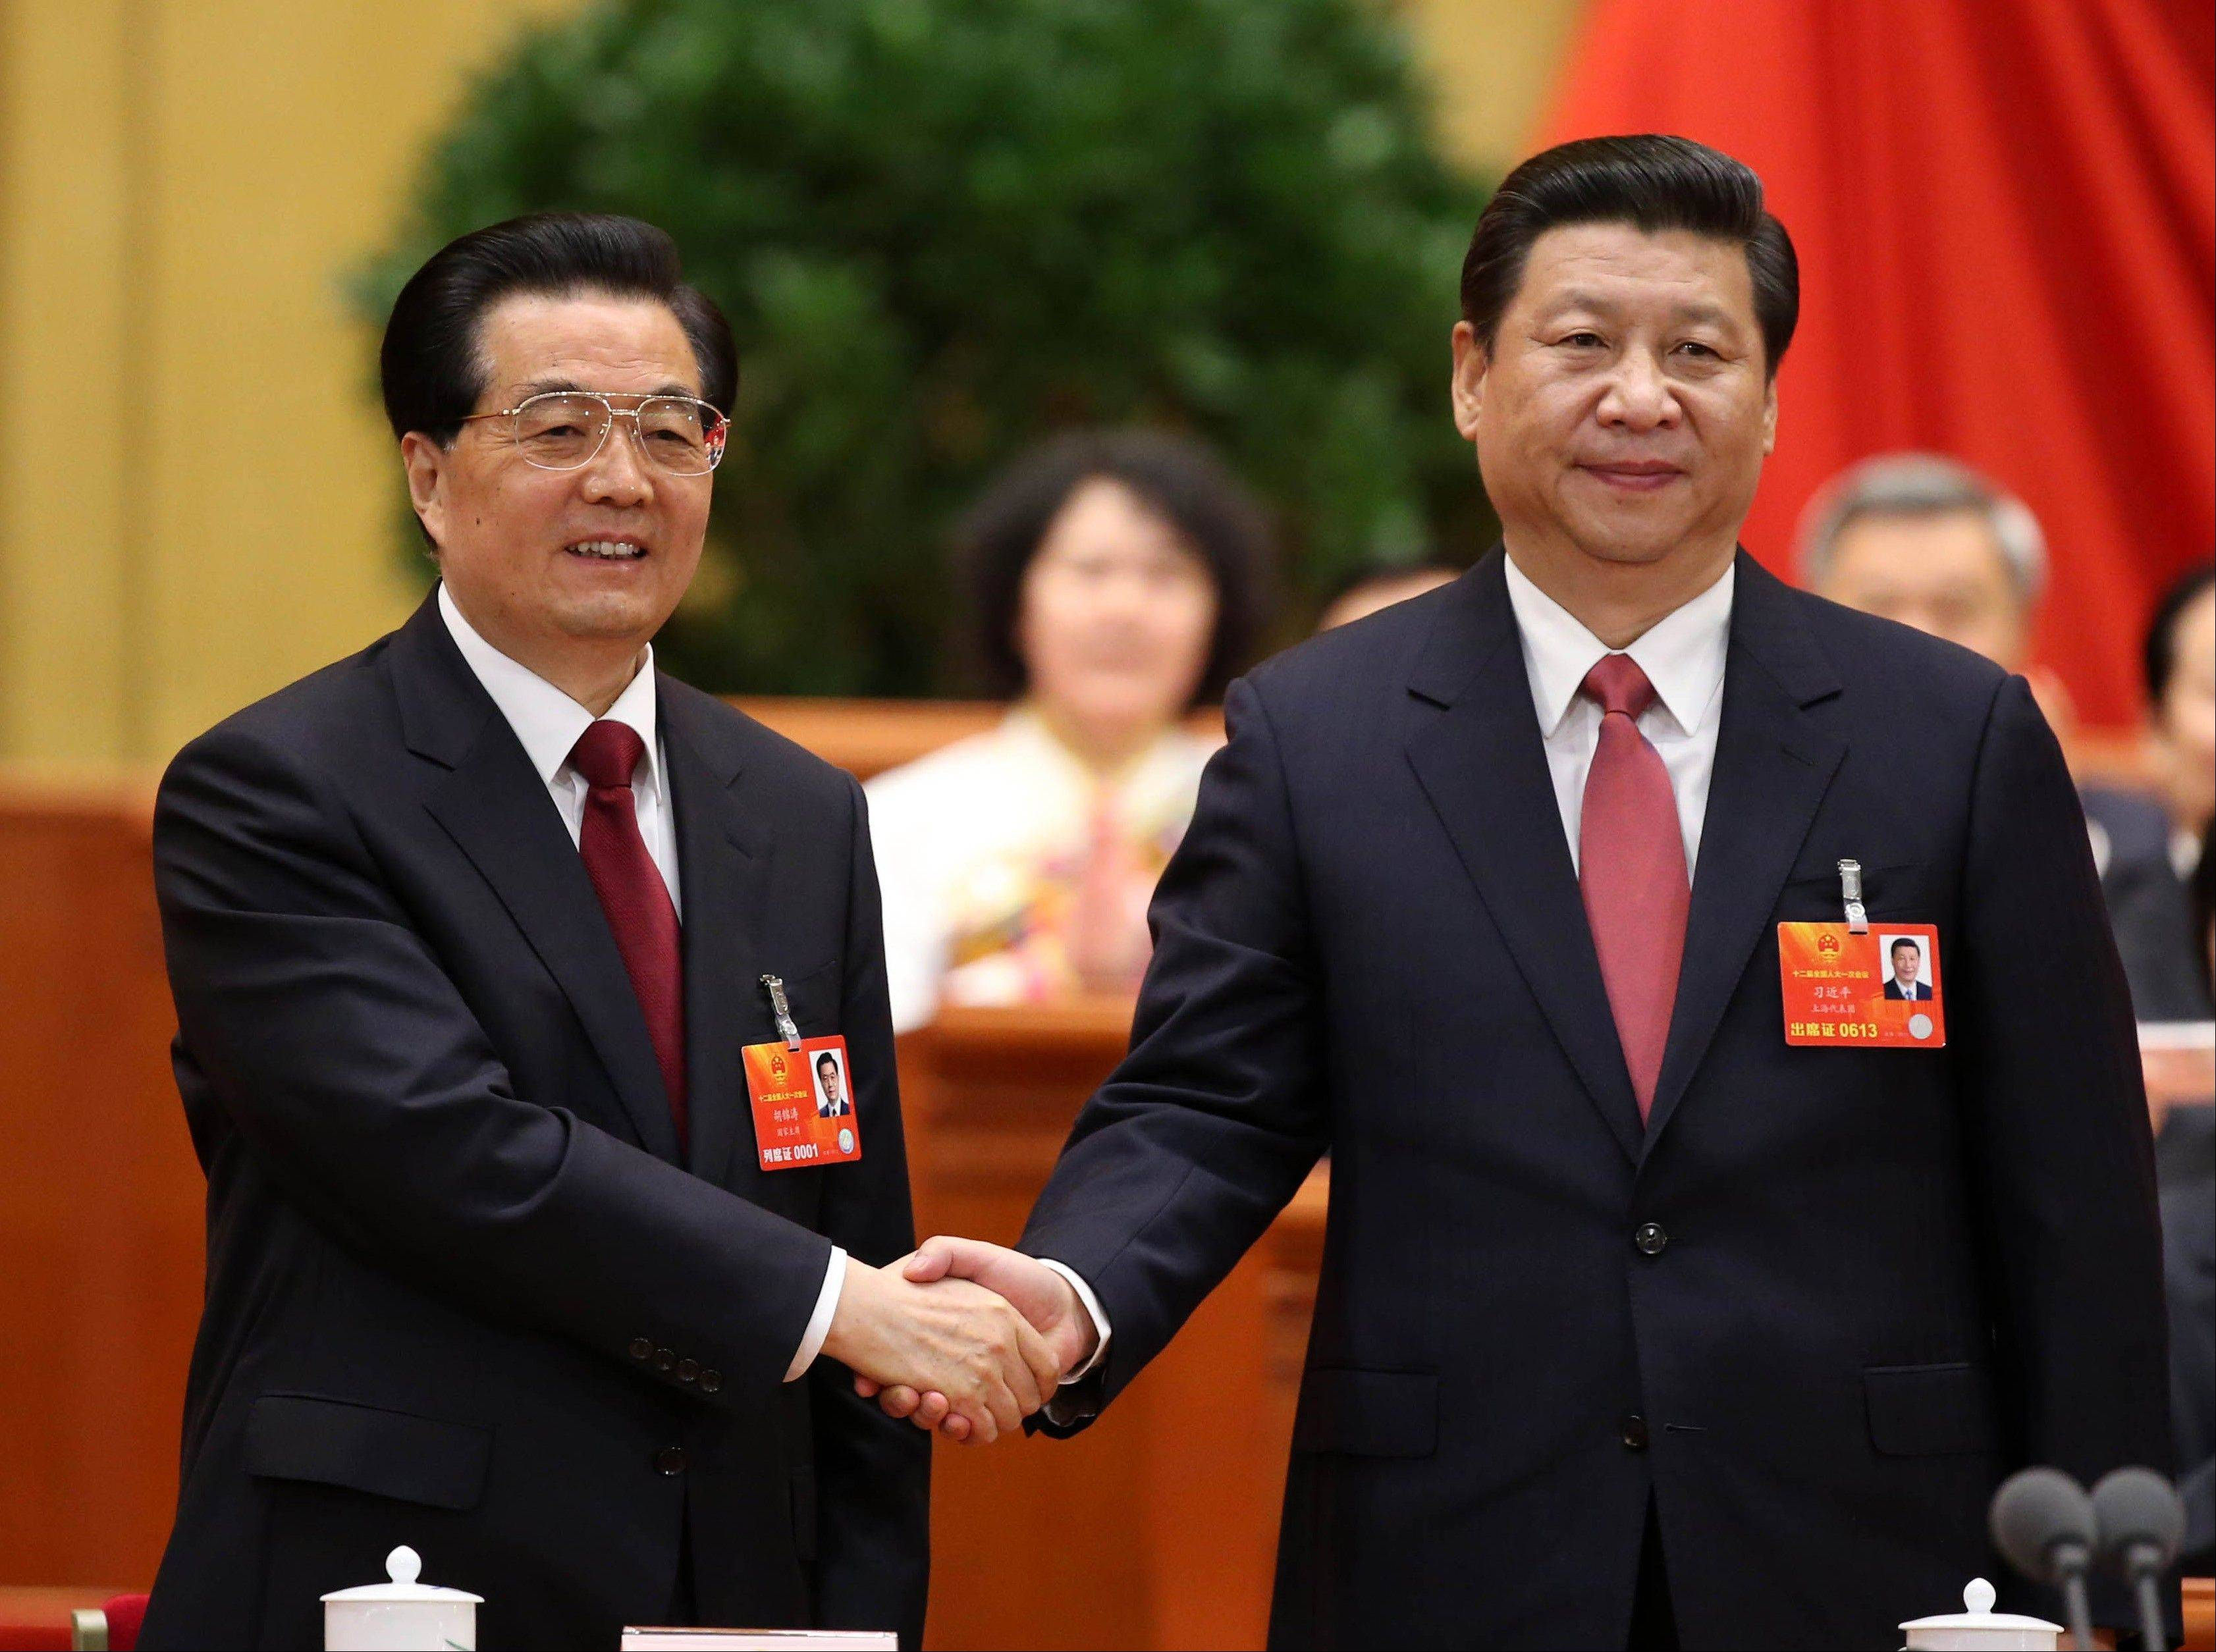 Outgoing Chinese President Hu Jintao, left, poses with his successor, Xi Jinping, after Xi was elected to the presidency at a plenary meeting of the National People�s Congress in Beijing Thursday.